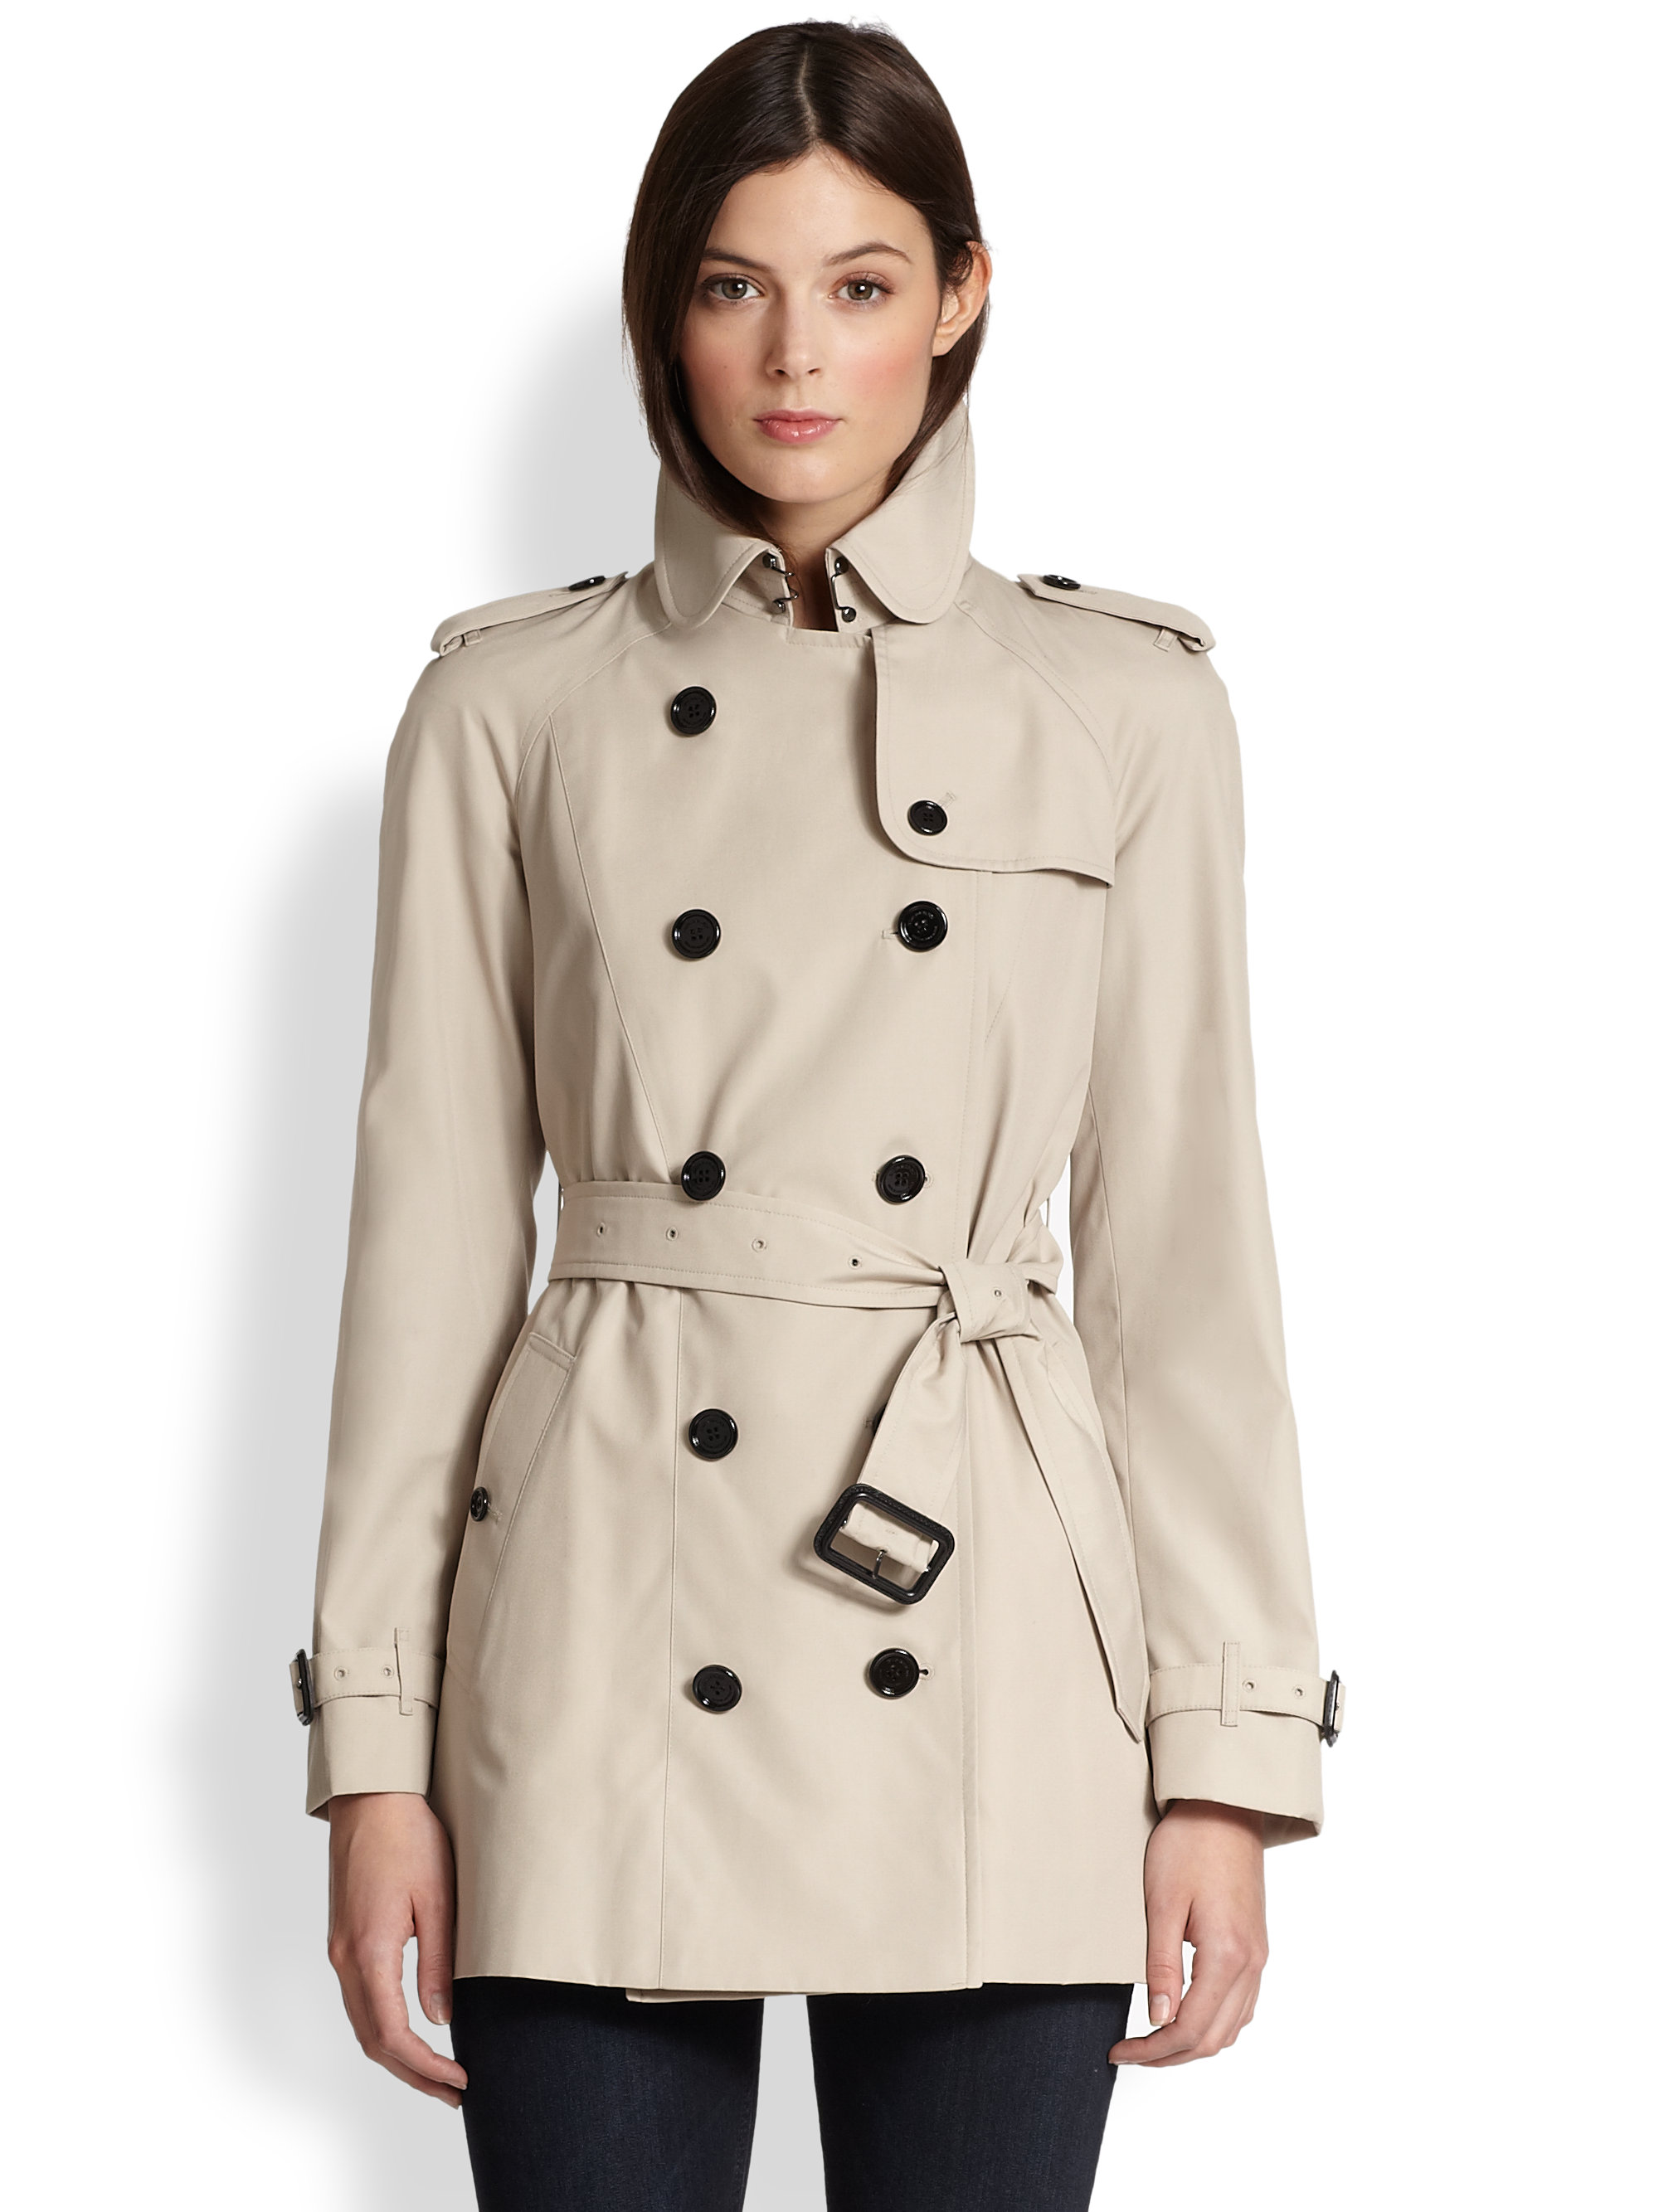 Discover the trendiest trench coat and resilient raincoat for when it's wet and wild outside at Hudson's Bay. Get free shipping across Canada on orders over $